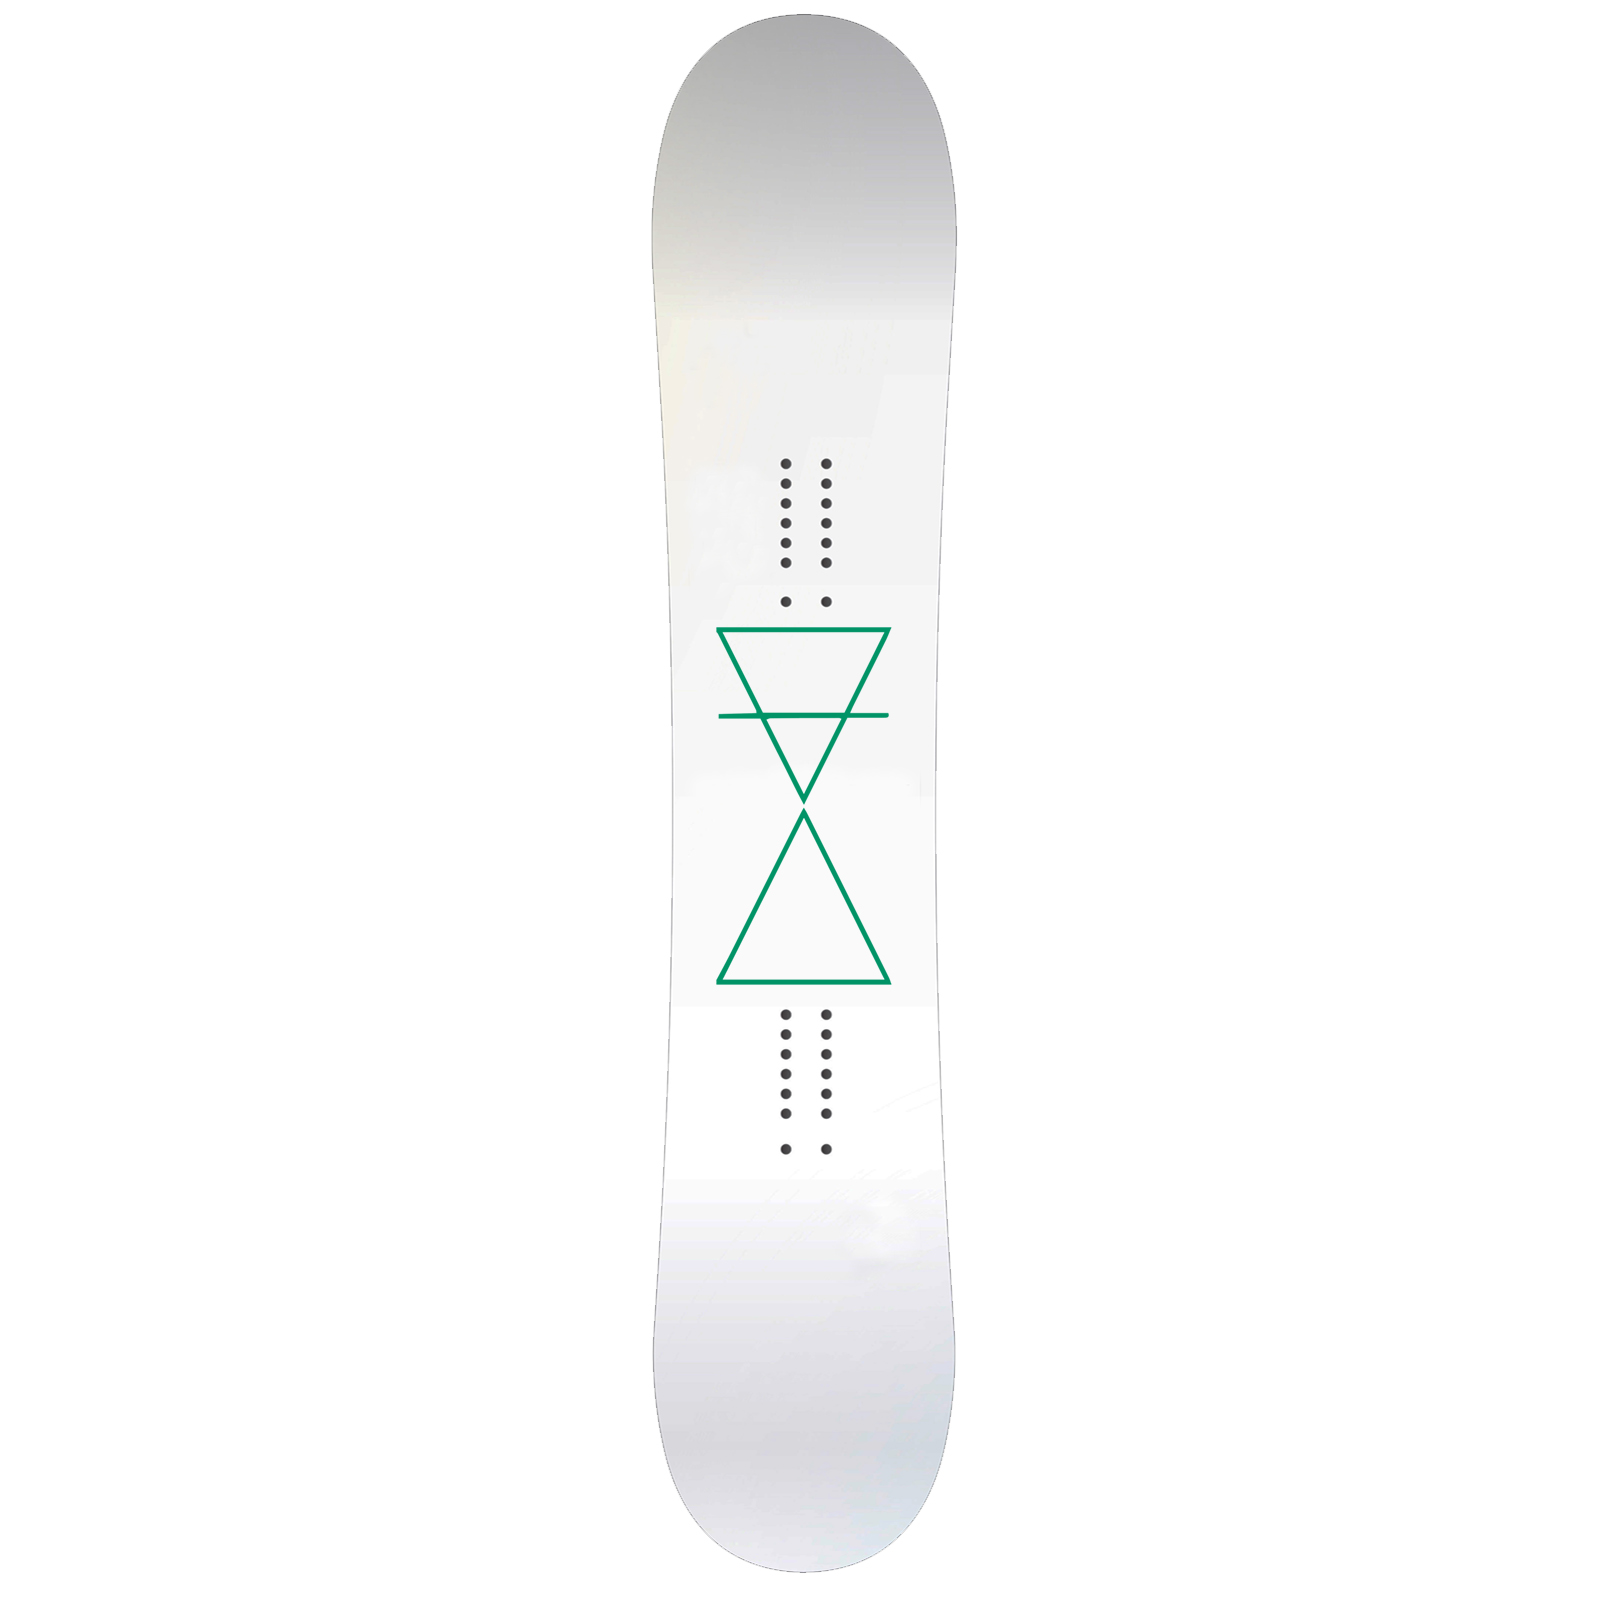 Inverted Triangles Snowboard Sticker All Weather Vinyl Decal